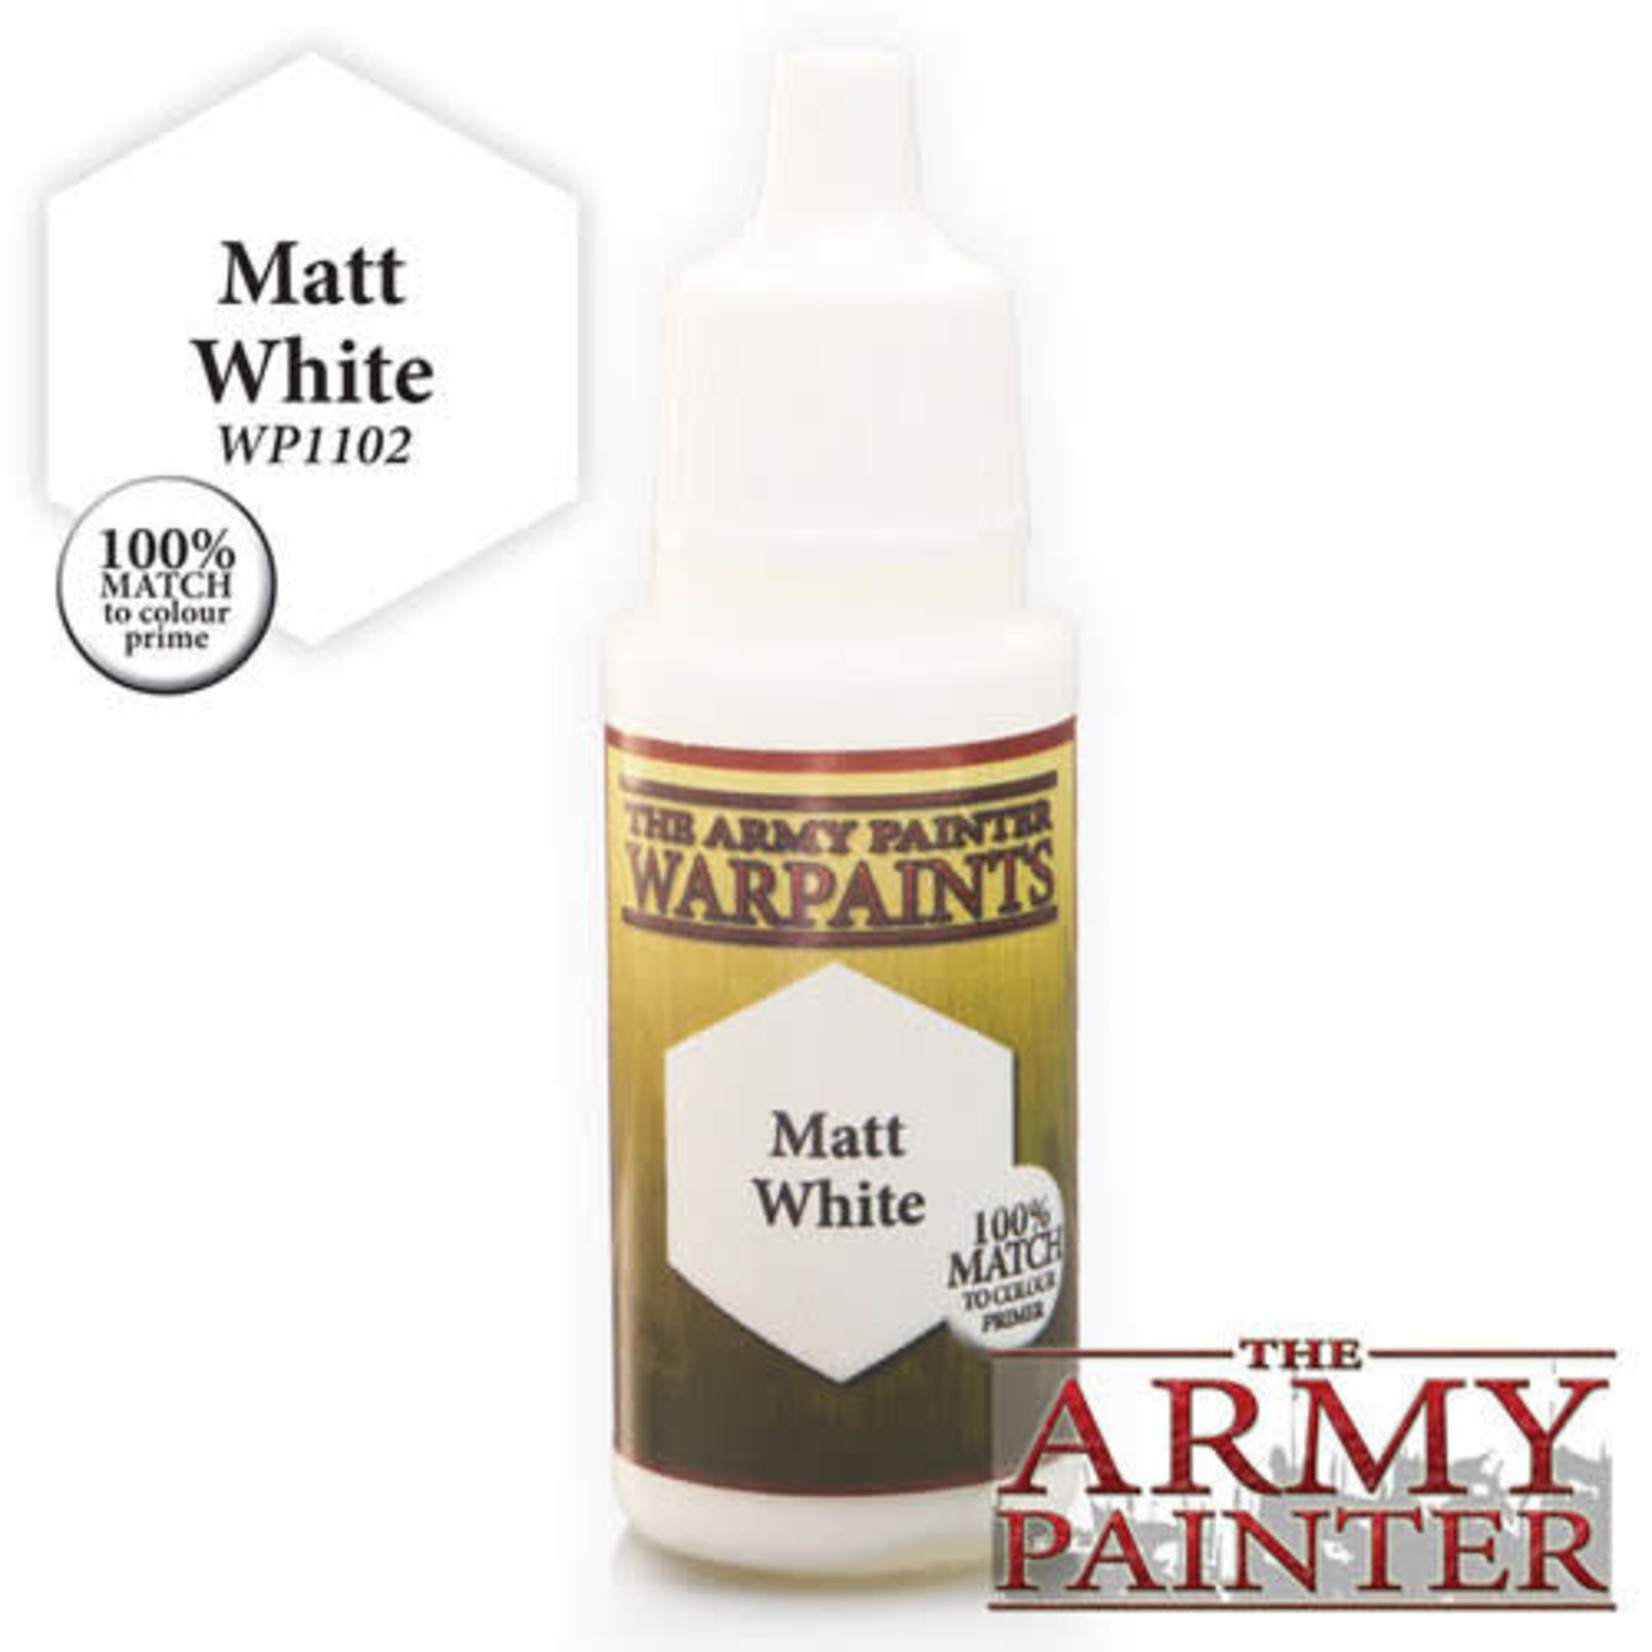 The Army Painter Matte White